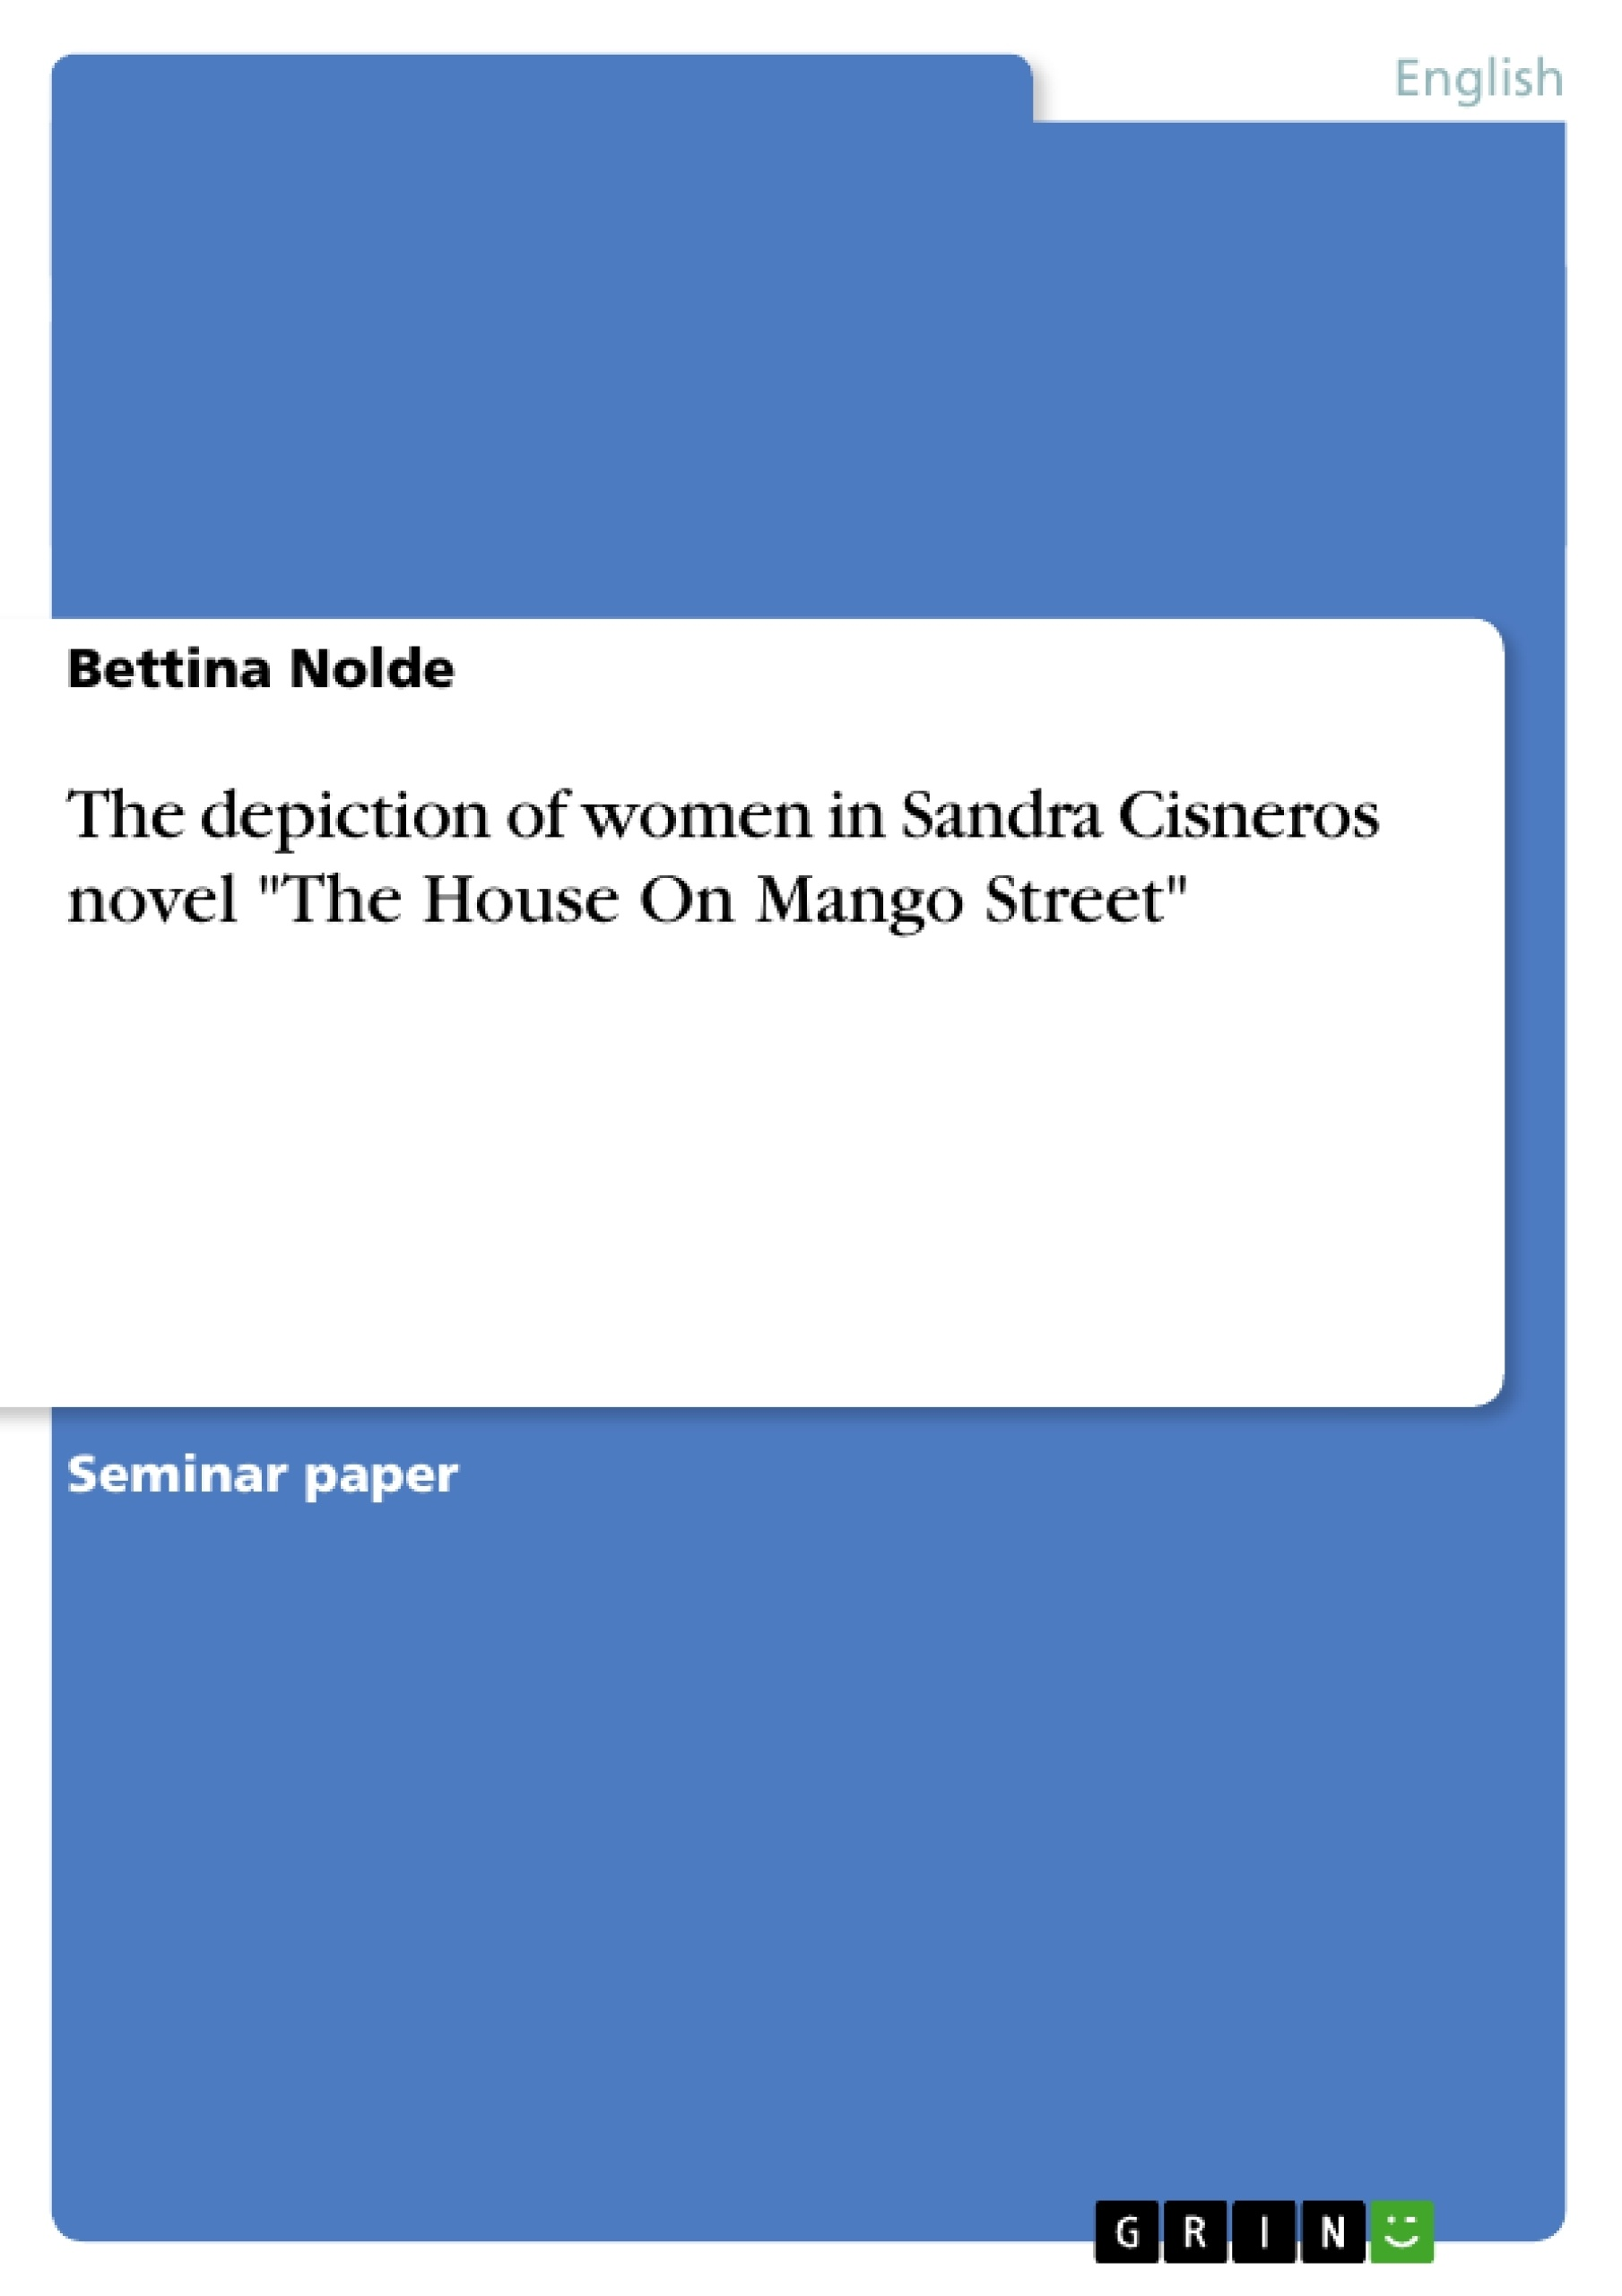 5 paragraph essay on the house on mango street